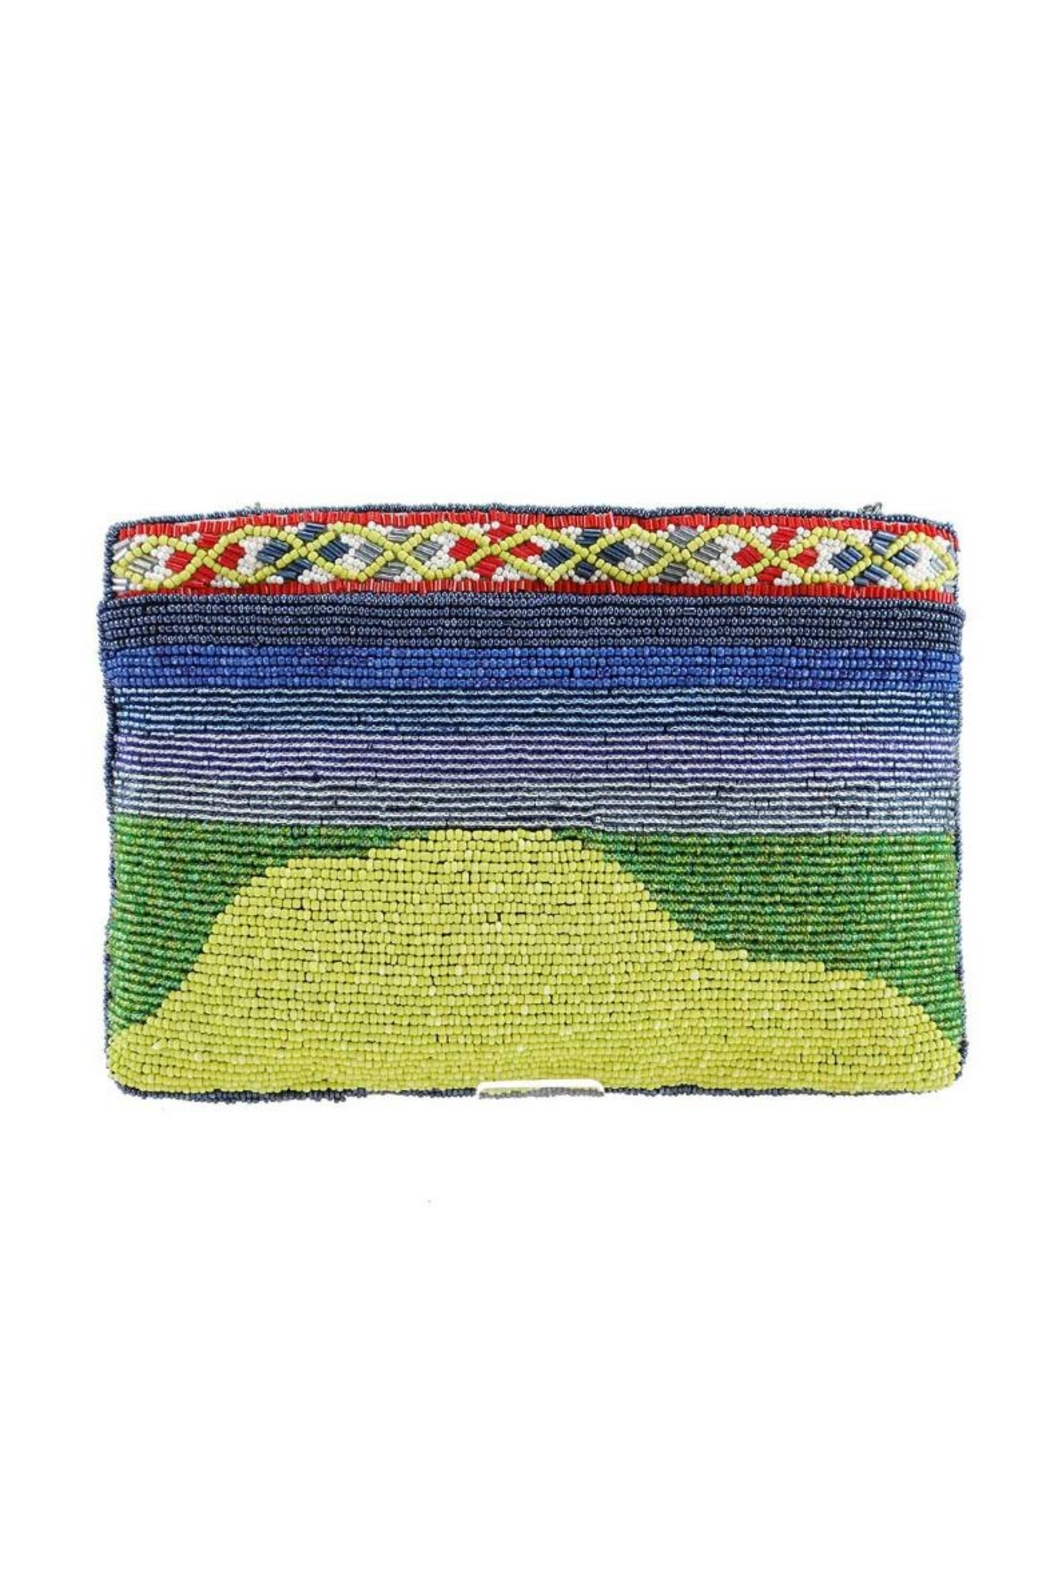 Mary Frances Par-Tee Beaded Clutch - Front Full Image